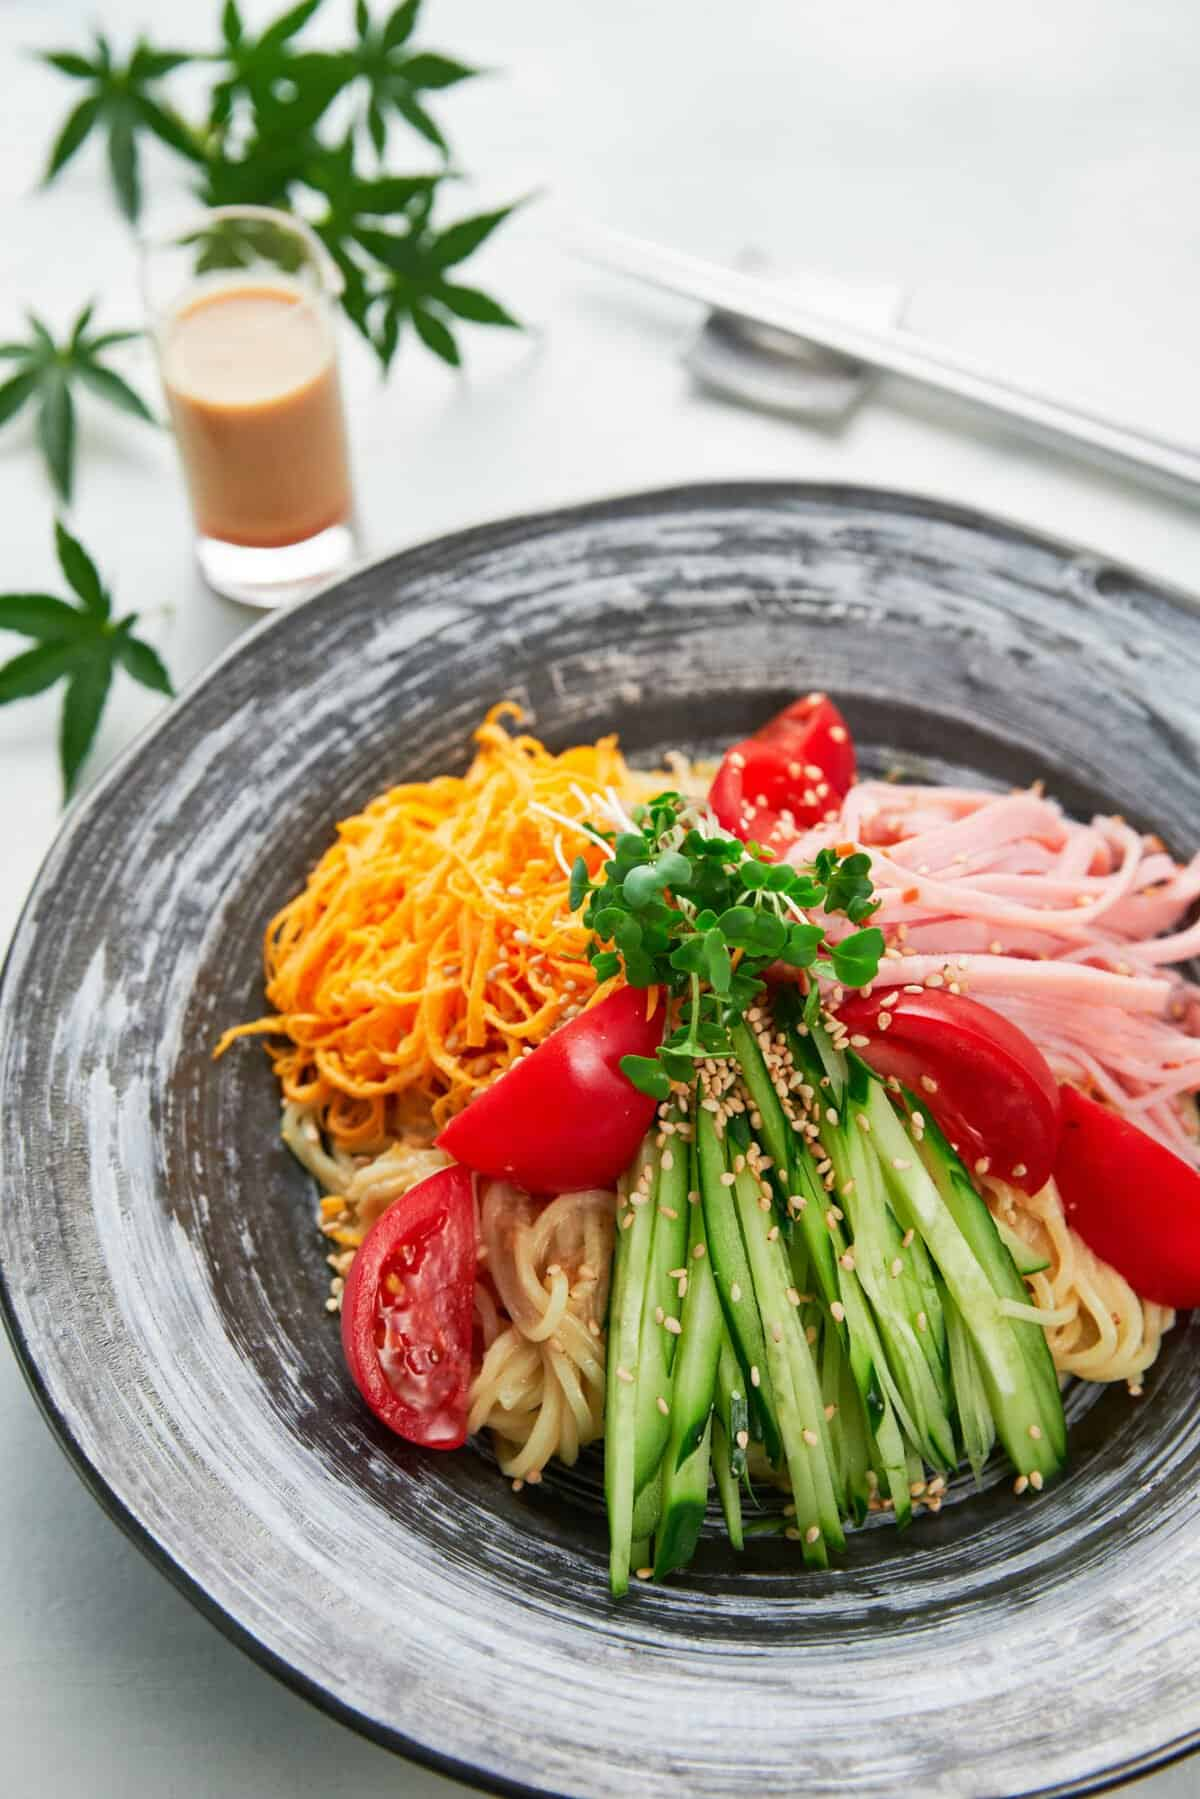 This cold ramen salad (Hiyashi Chuka) is the perfect light meal for a hot summer day. With loads of veggies and protein over a bed of chilled ramen noodles dressed with a creamy sesame vinaigrette, it's sure to wake your appetite on even the hottest of days.